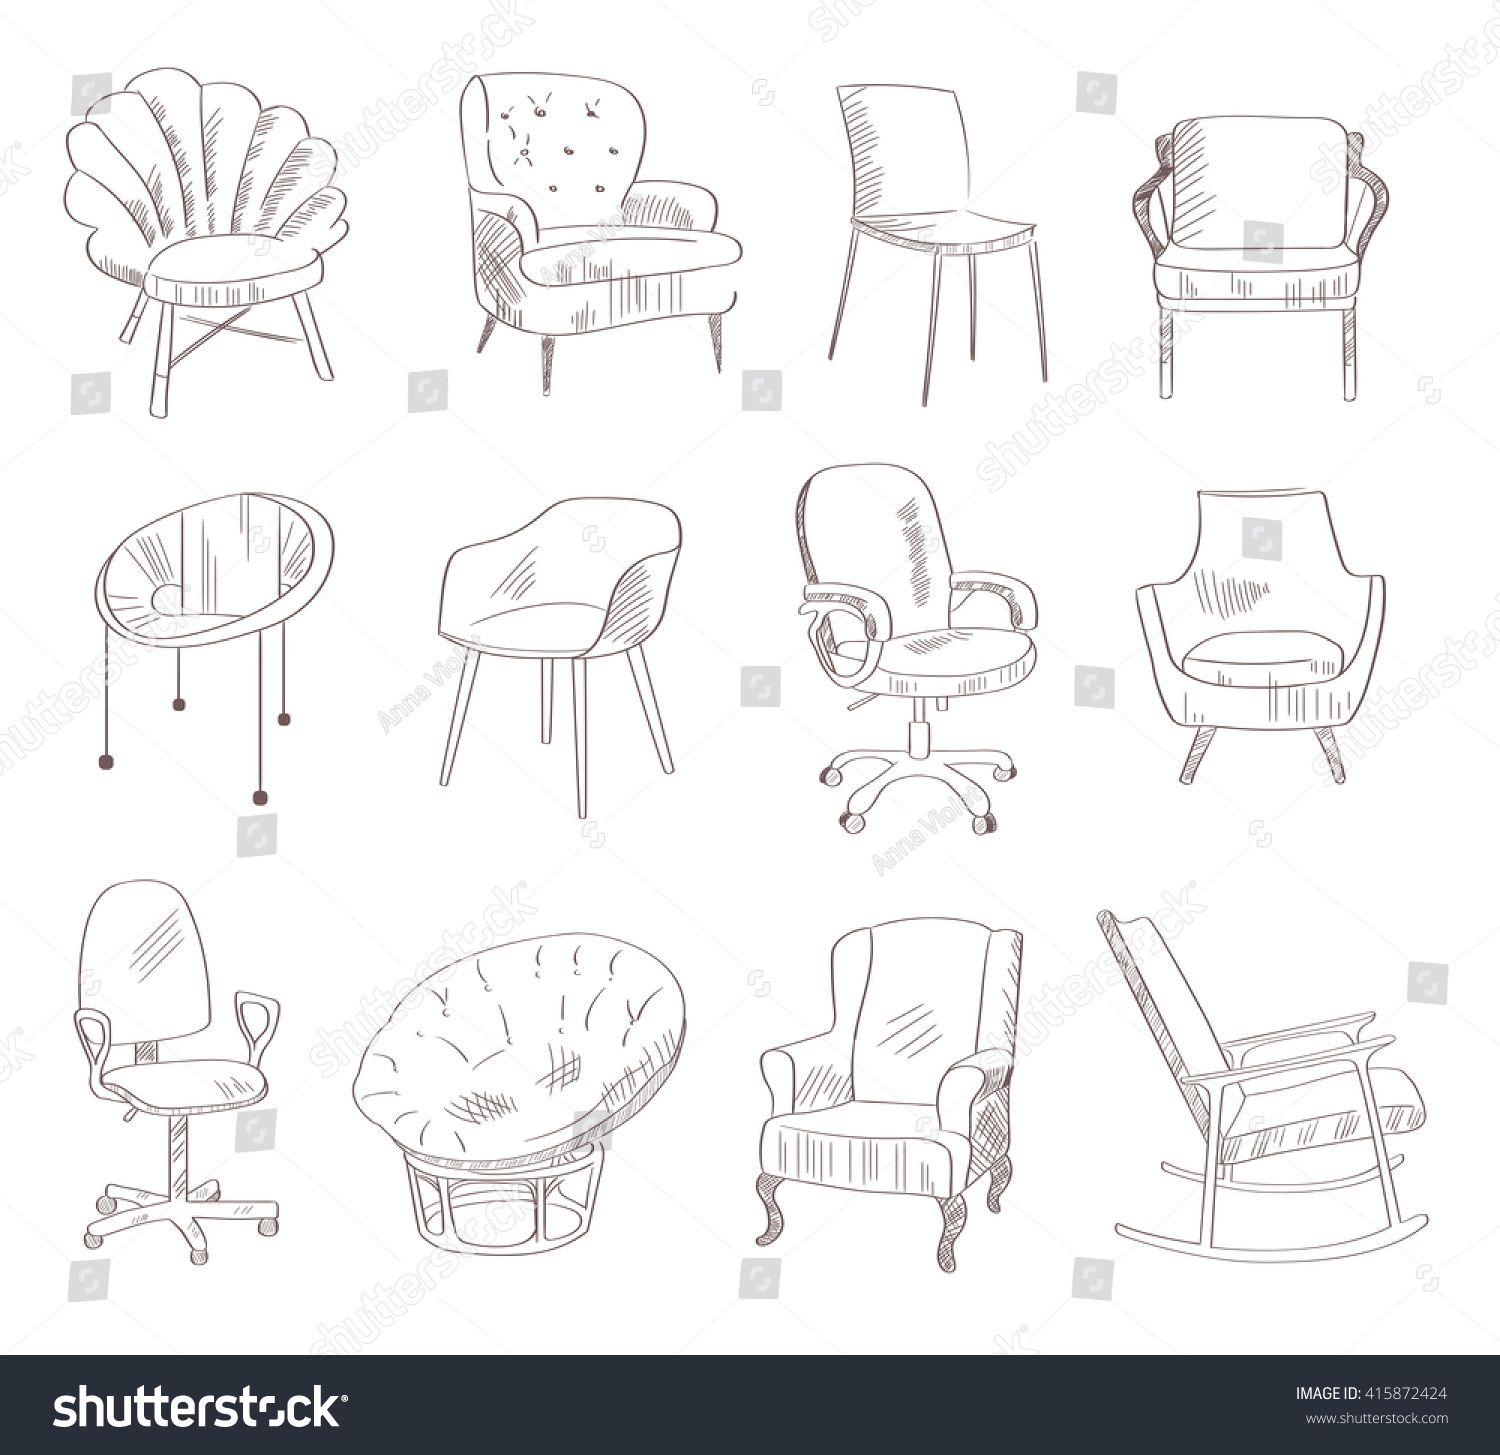 Set With Chairs Vector Illustration Hand Drawn Sketch How To Draw Hands Interior Design Drawings Interior Design Sketches